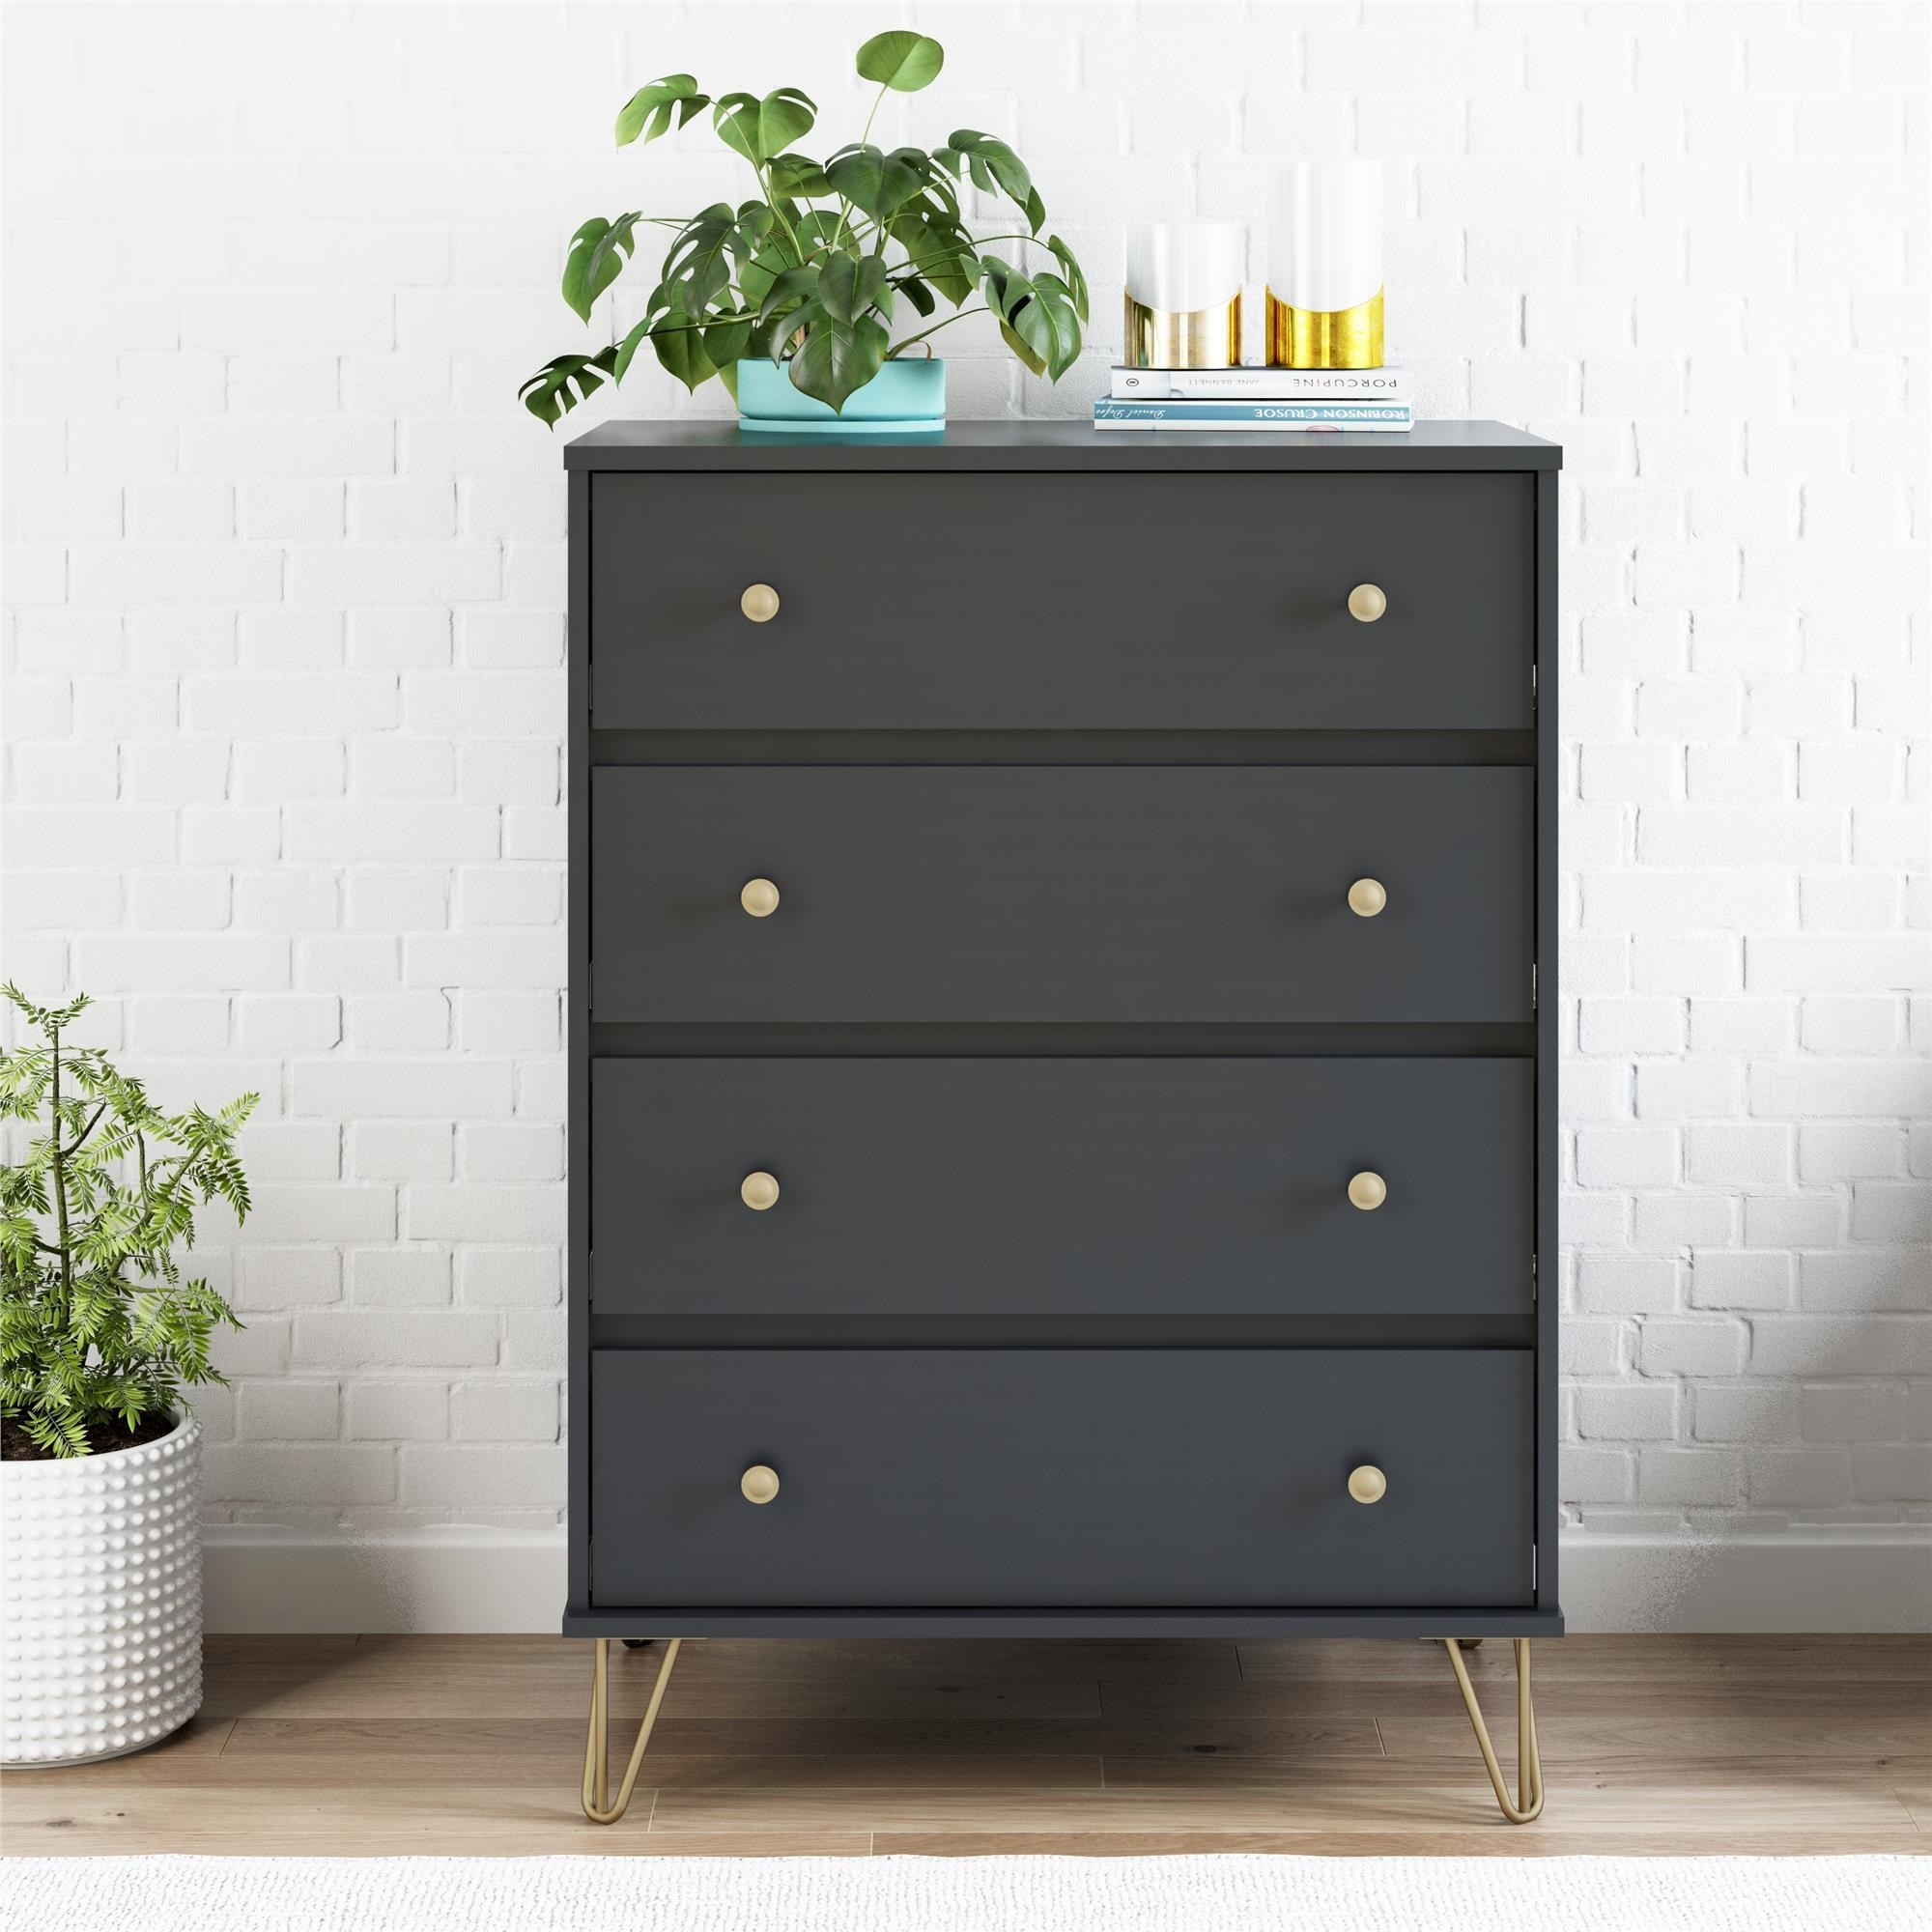 a black standing dresser with four drawers